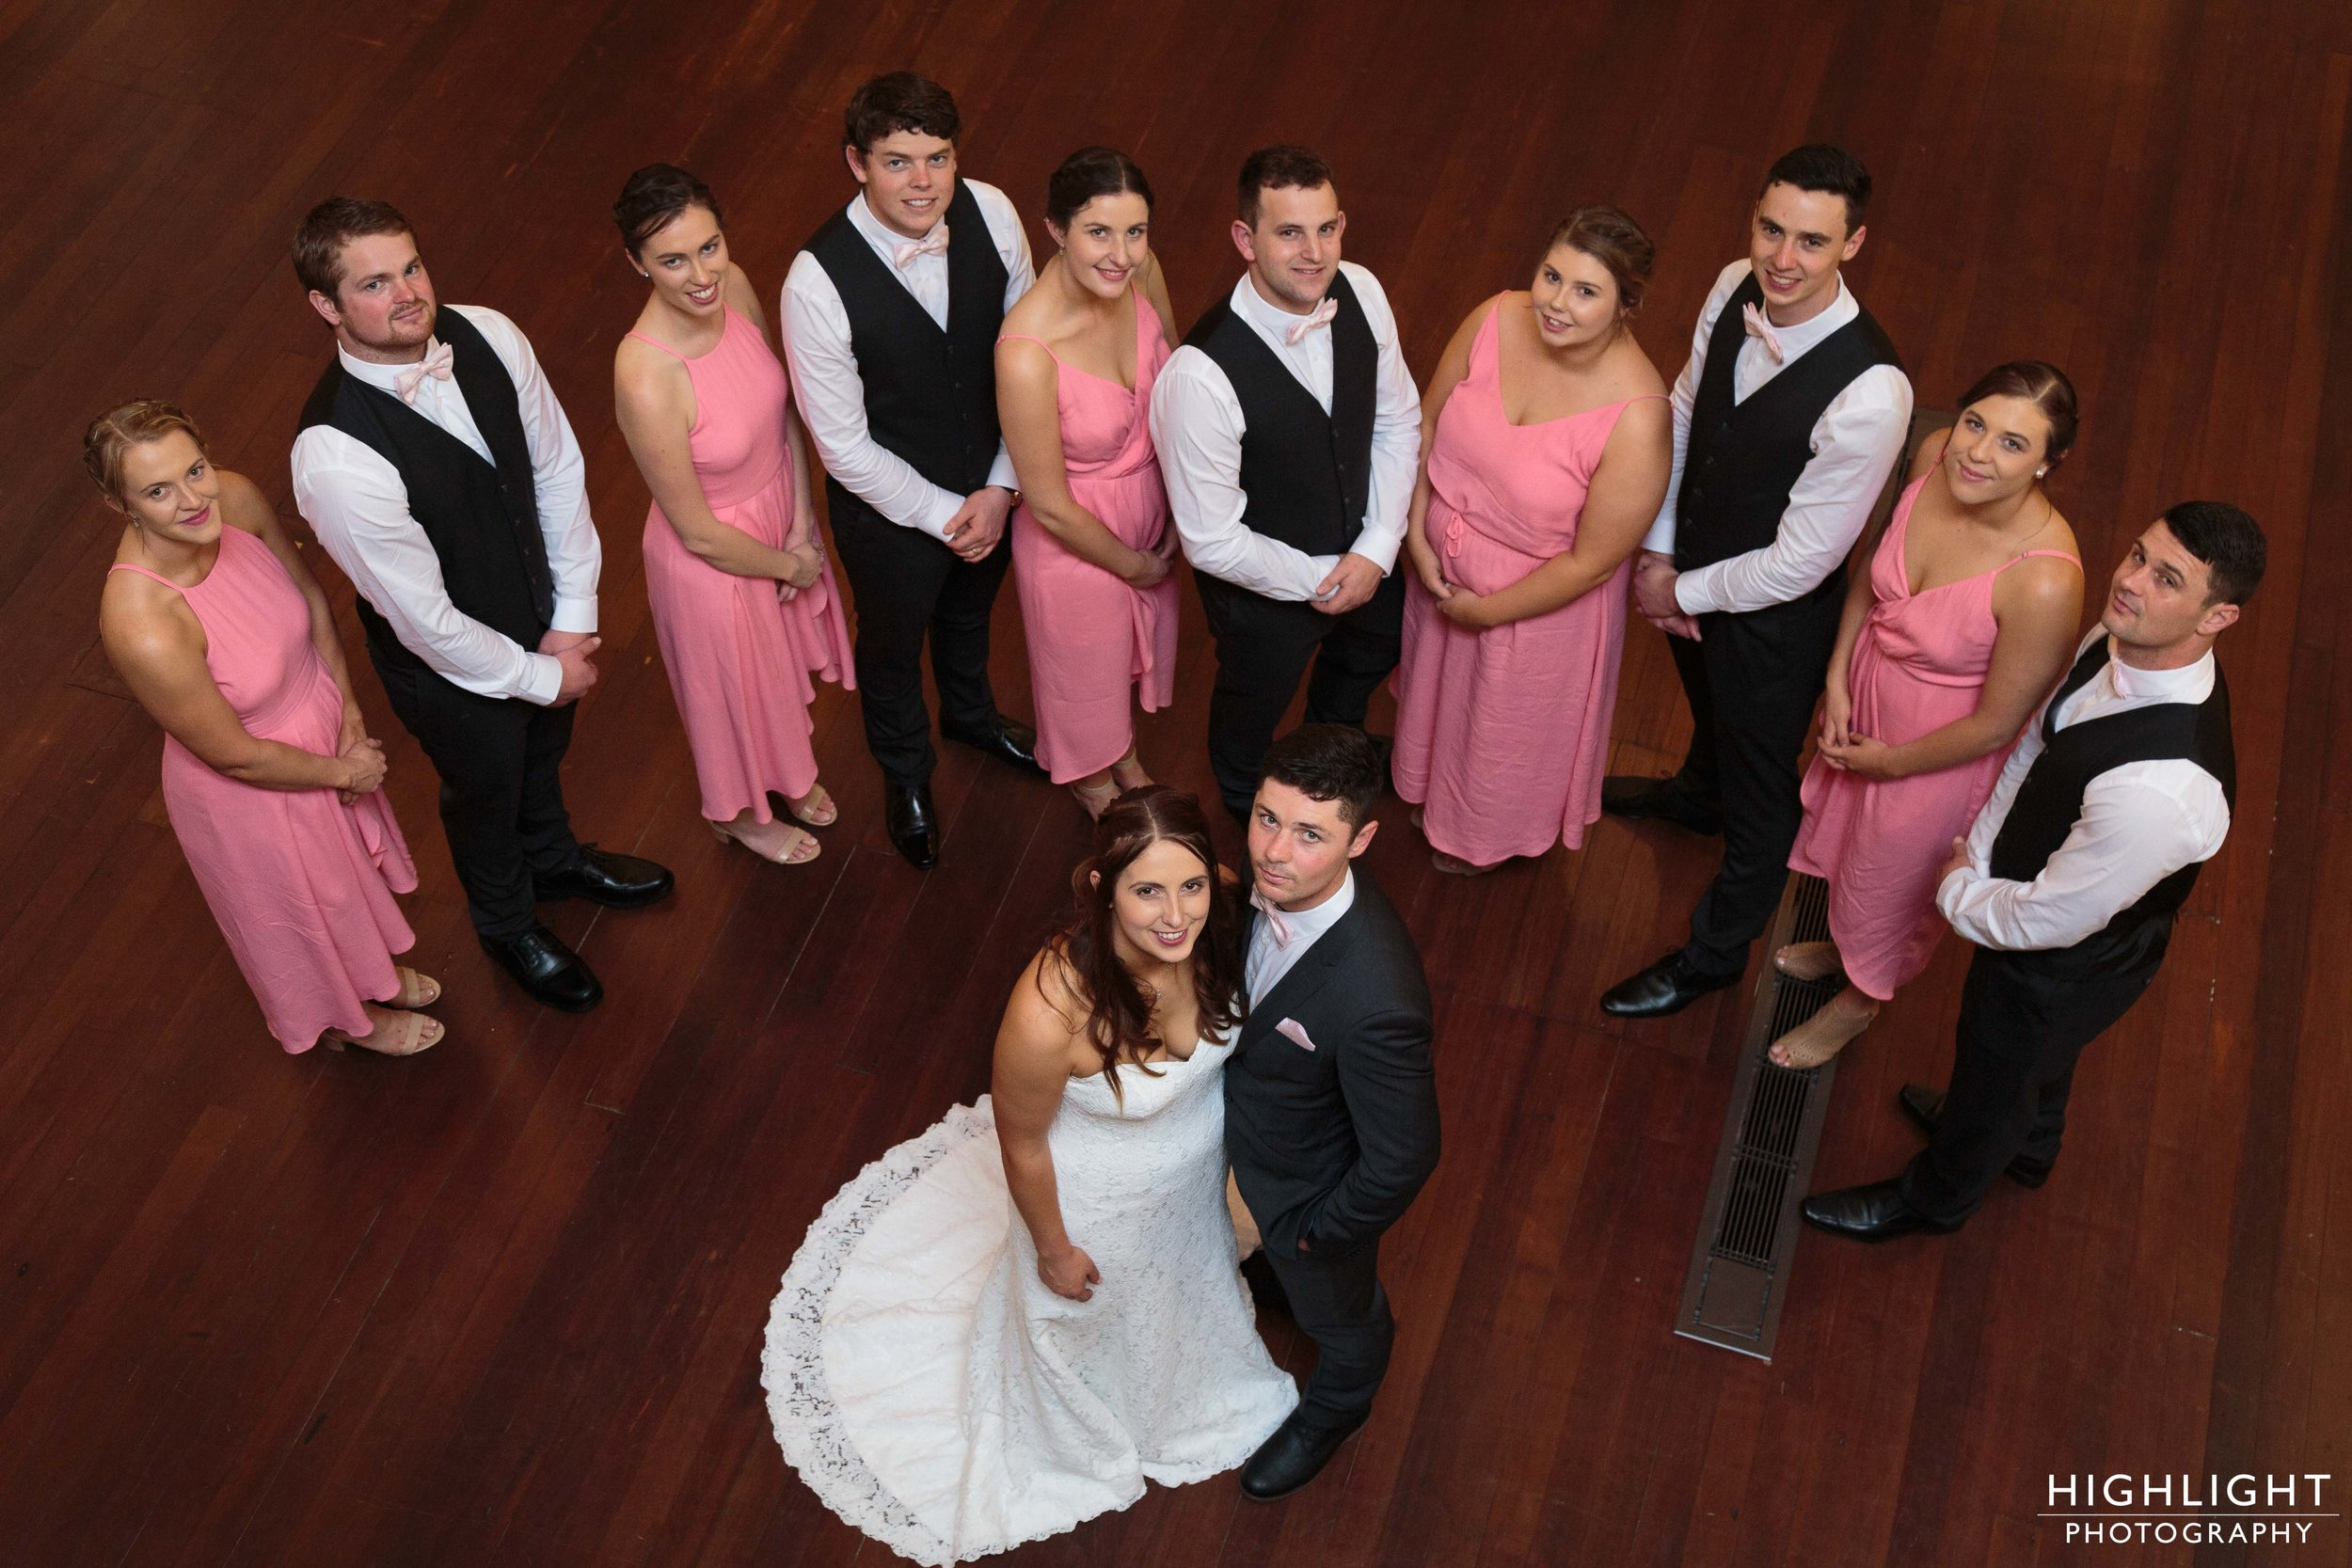 highlight-wedding-photography-palmerston-north-new-zealand-sarahben-2017-42.jpg